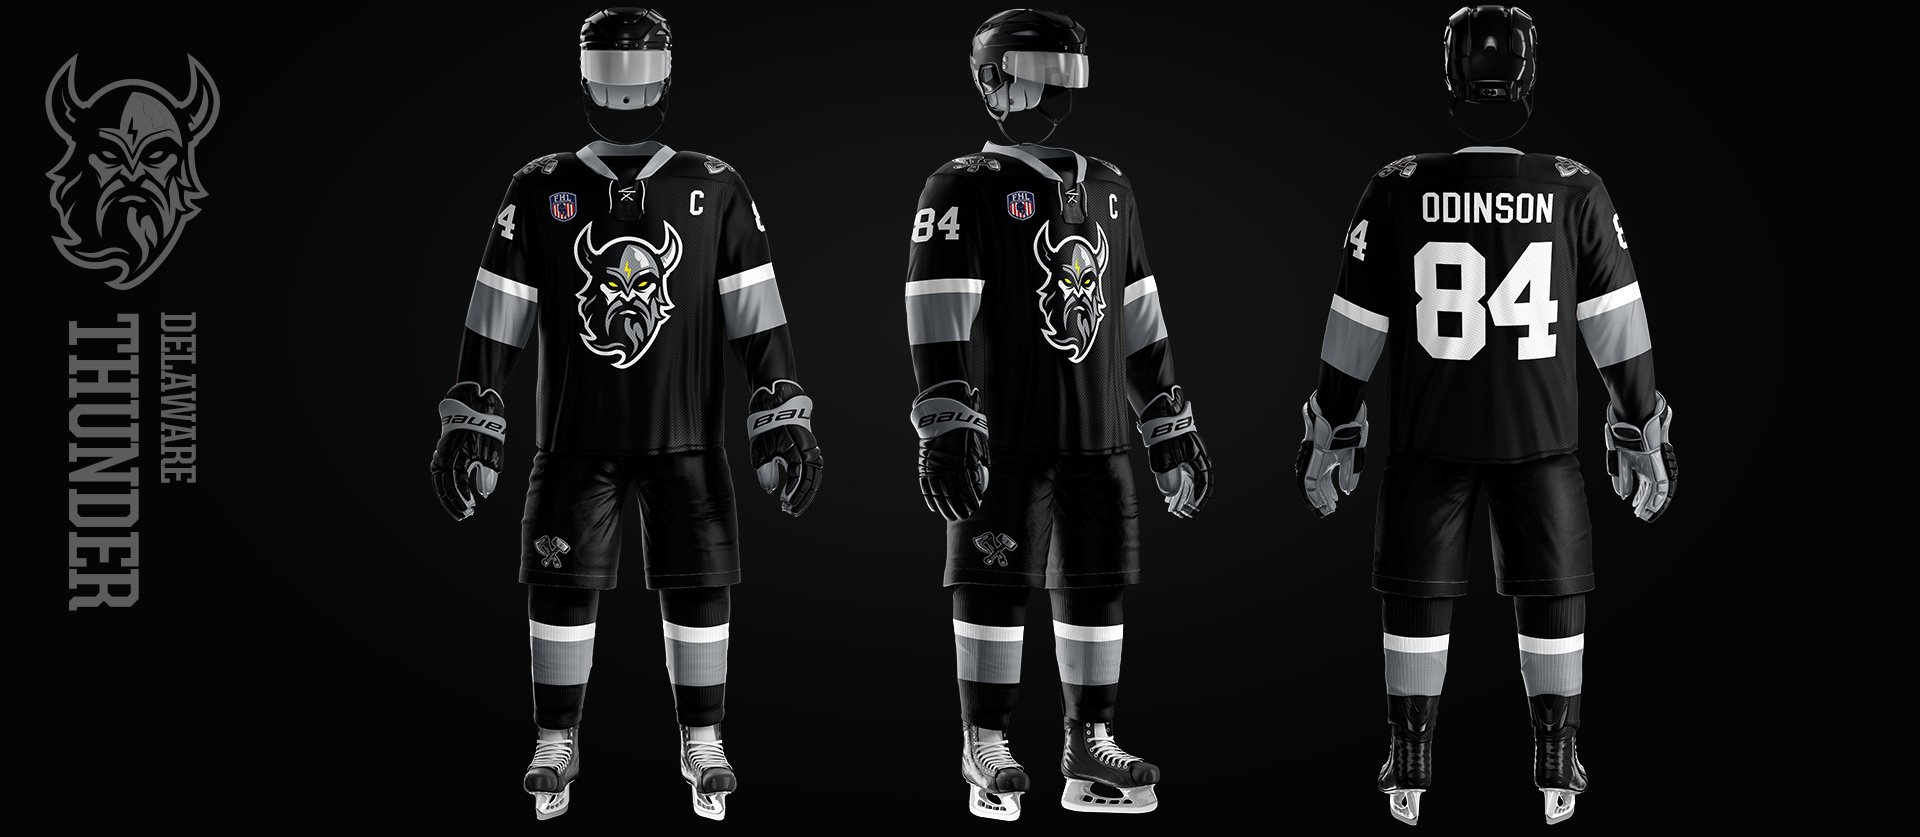 Delaware Thunder Uniforms design the the fhl